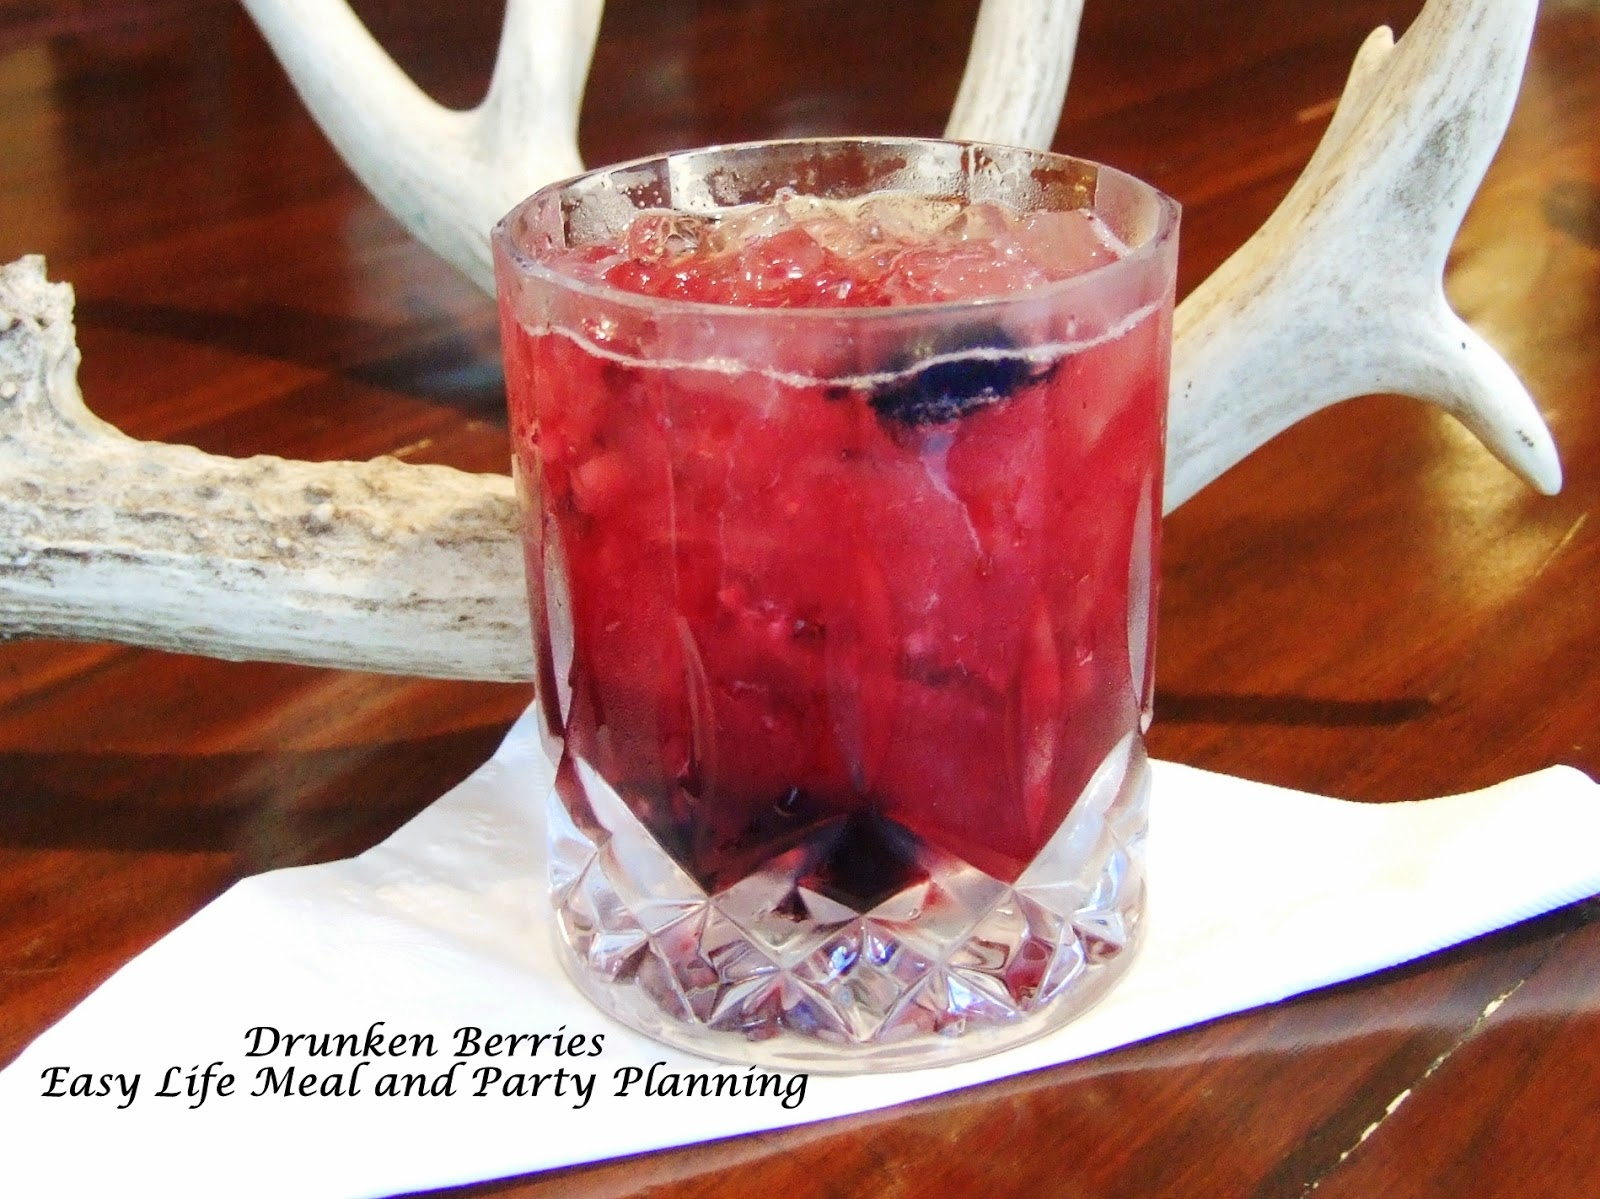 Drunken Berries Cocktail by Easy Life Meal and Party Planning